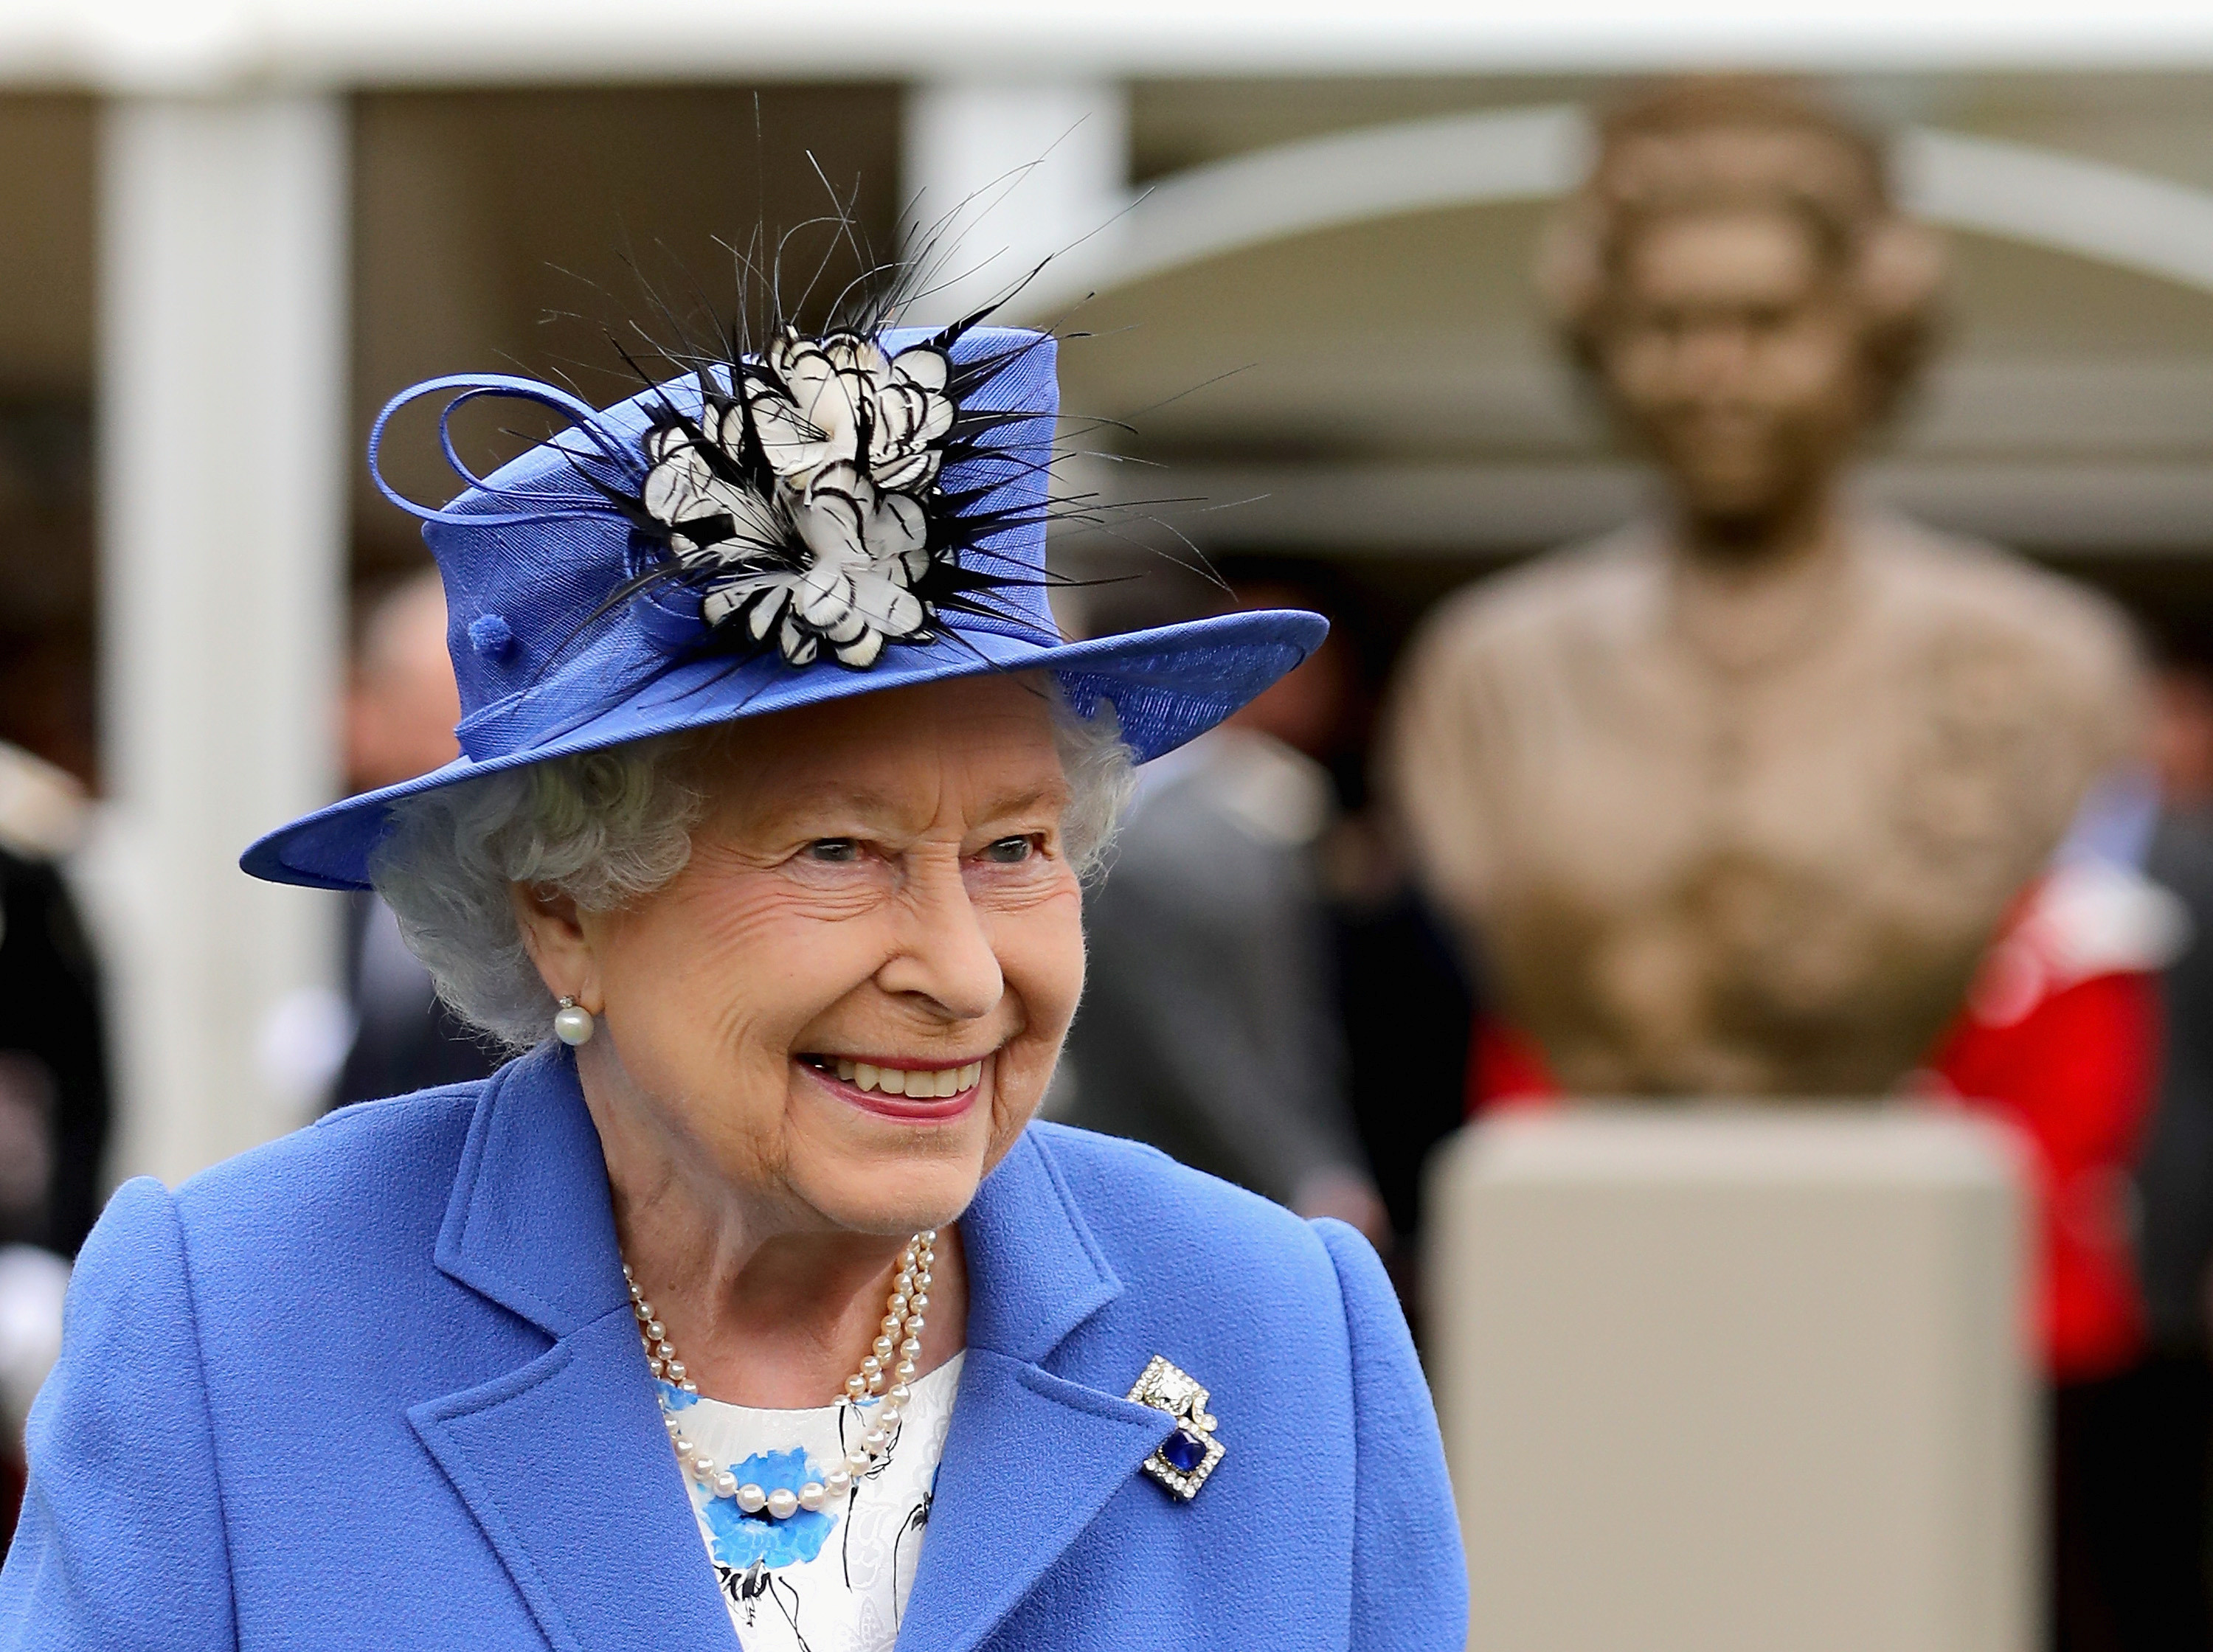 Queen Elizabeth II smiles as she walks past a bronze bust of herself during a visit to the Honourable Artillery Company June 1, 2016 in London, Britain. REUTERS/Chris Jackson/Pool - RTX2F7JZ